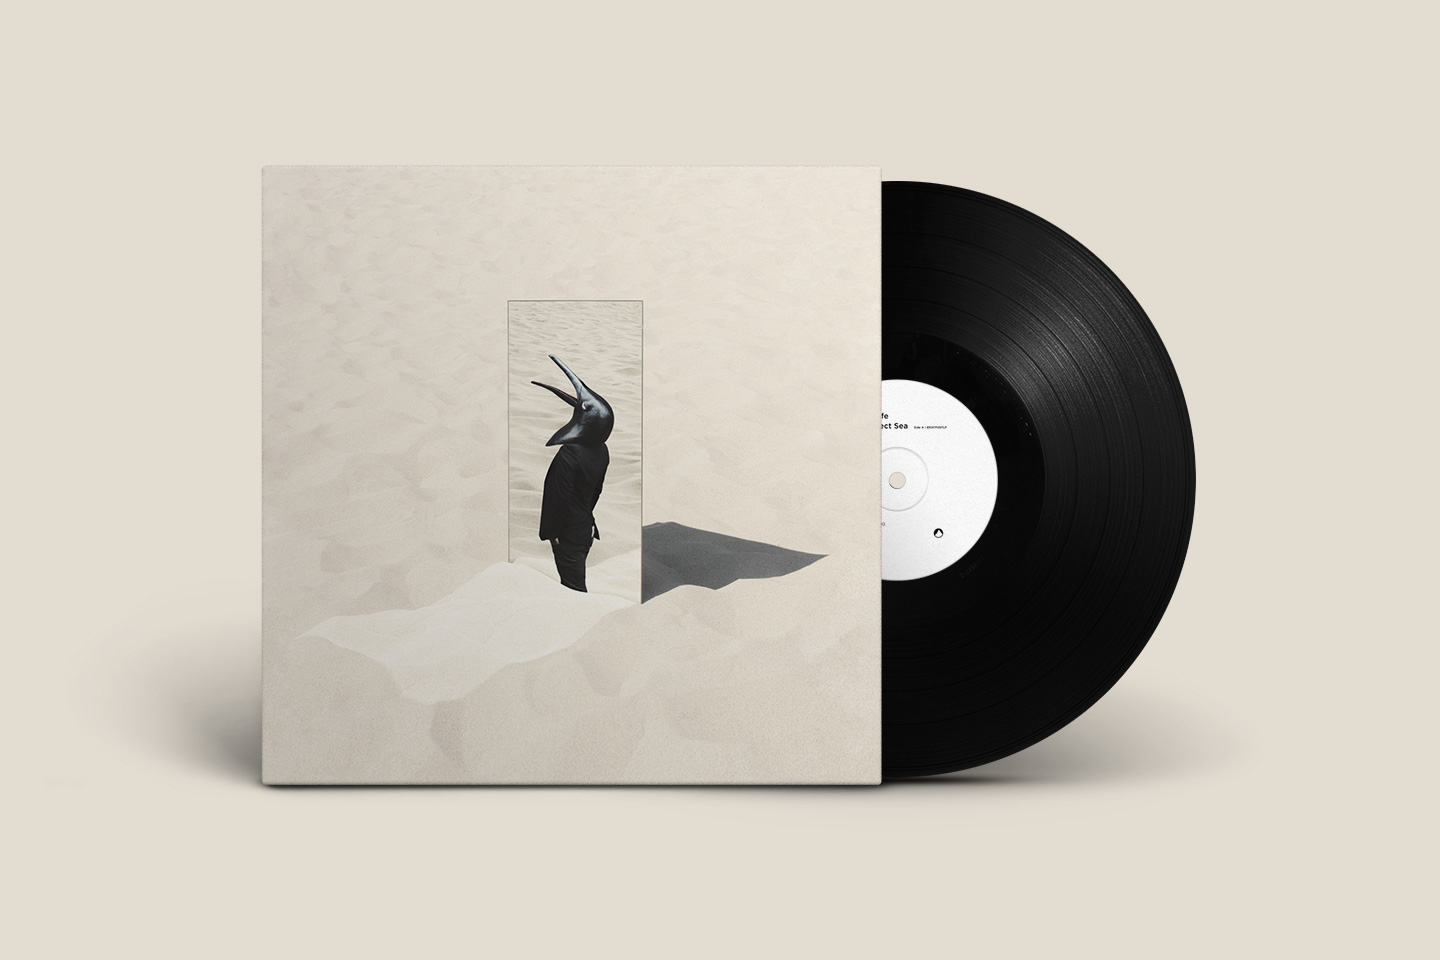 The Imperfect Sea By Penguin Cafe Releases Erased Tapes